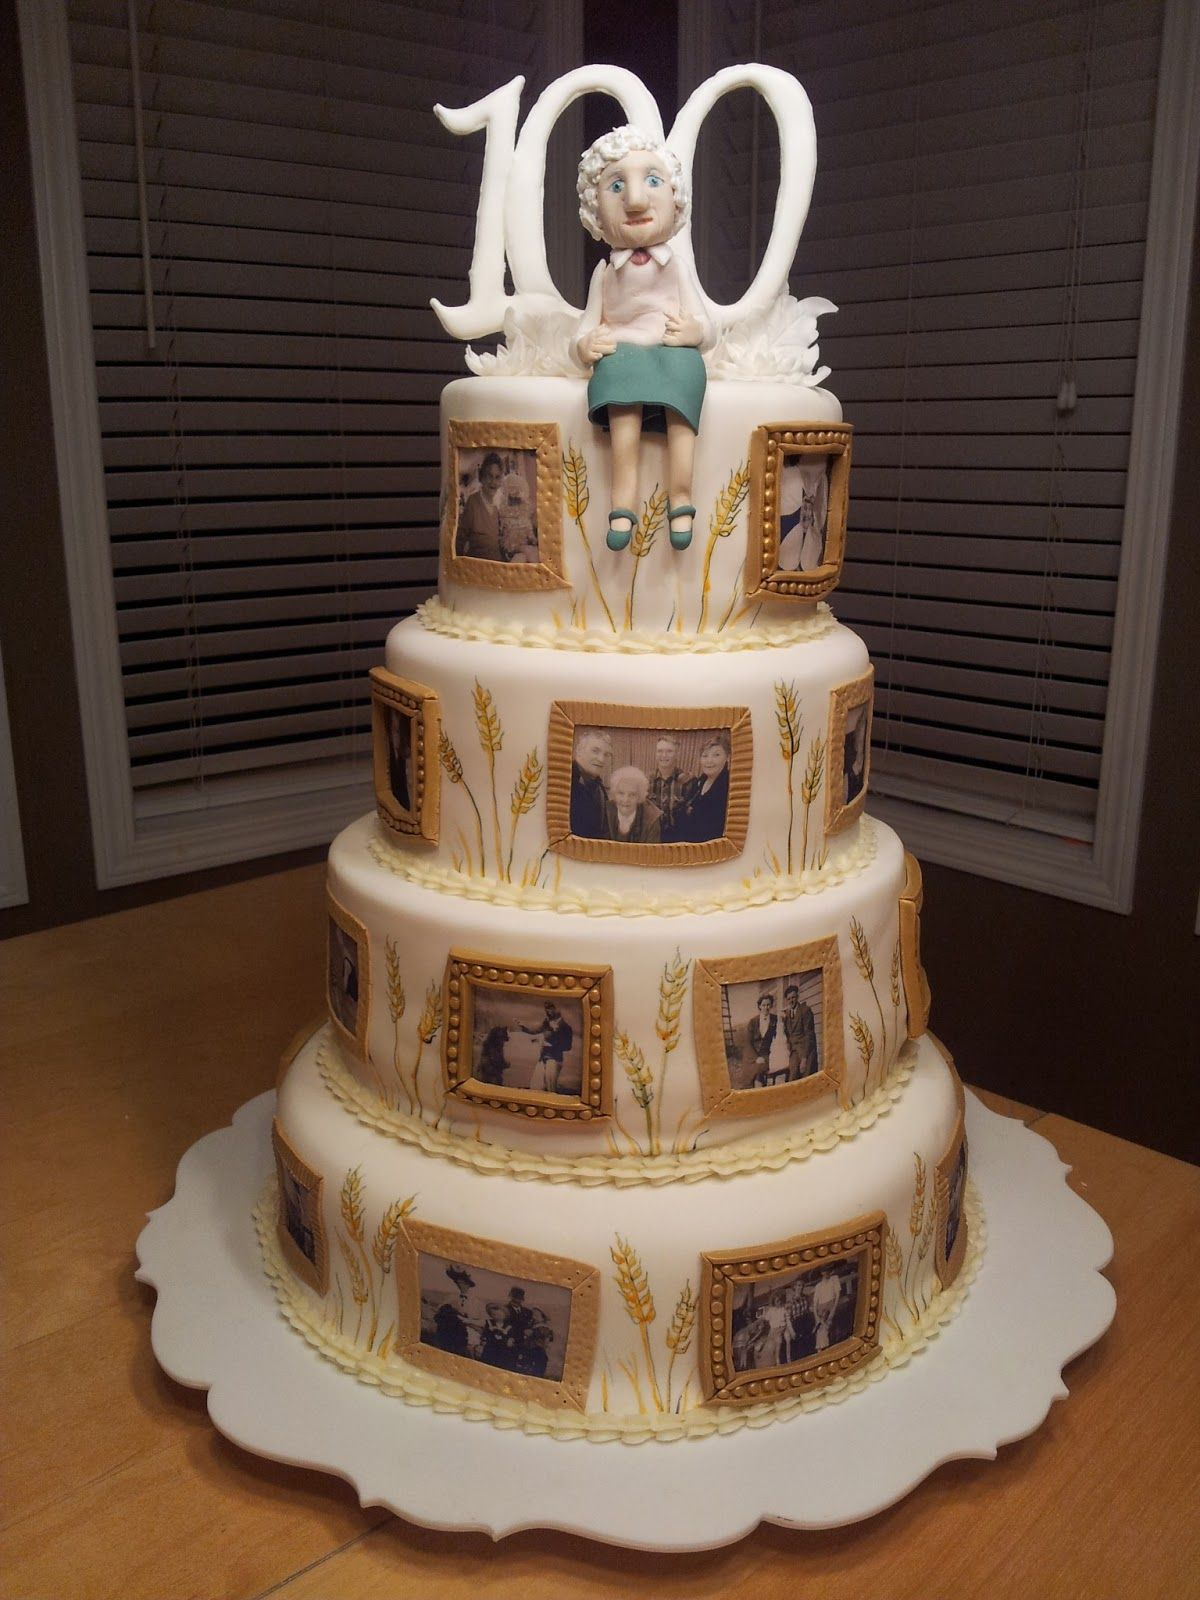 Kiddles N Bits 100th Birthday Cake Grandma Pinterest